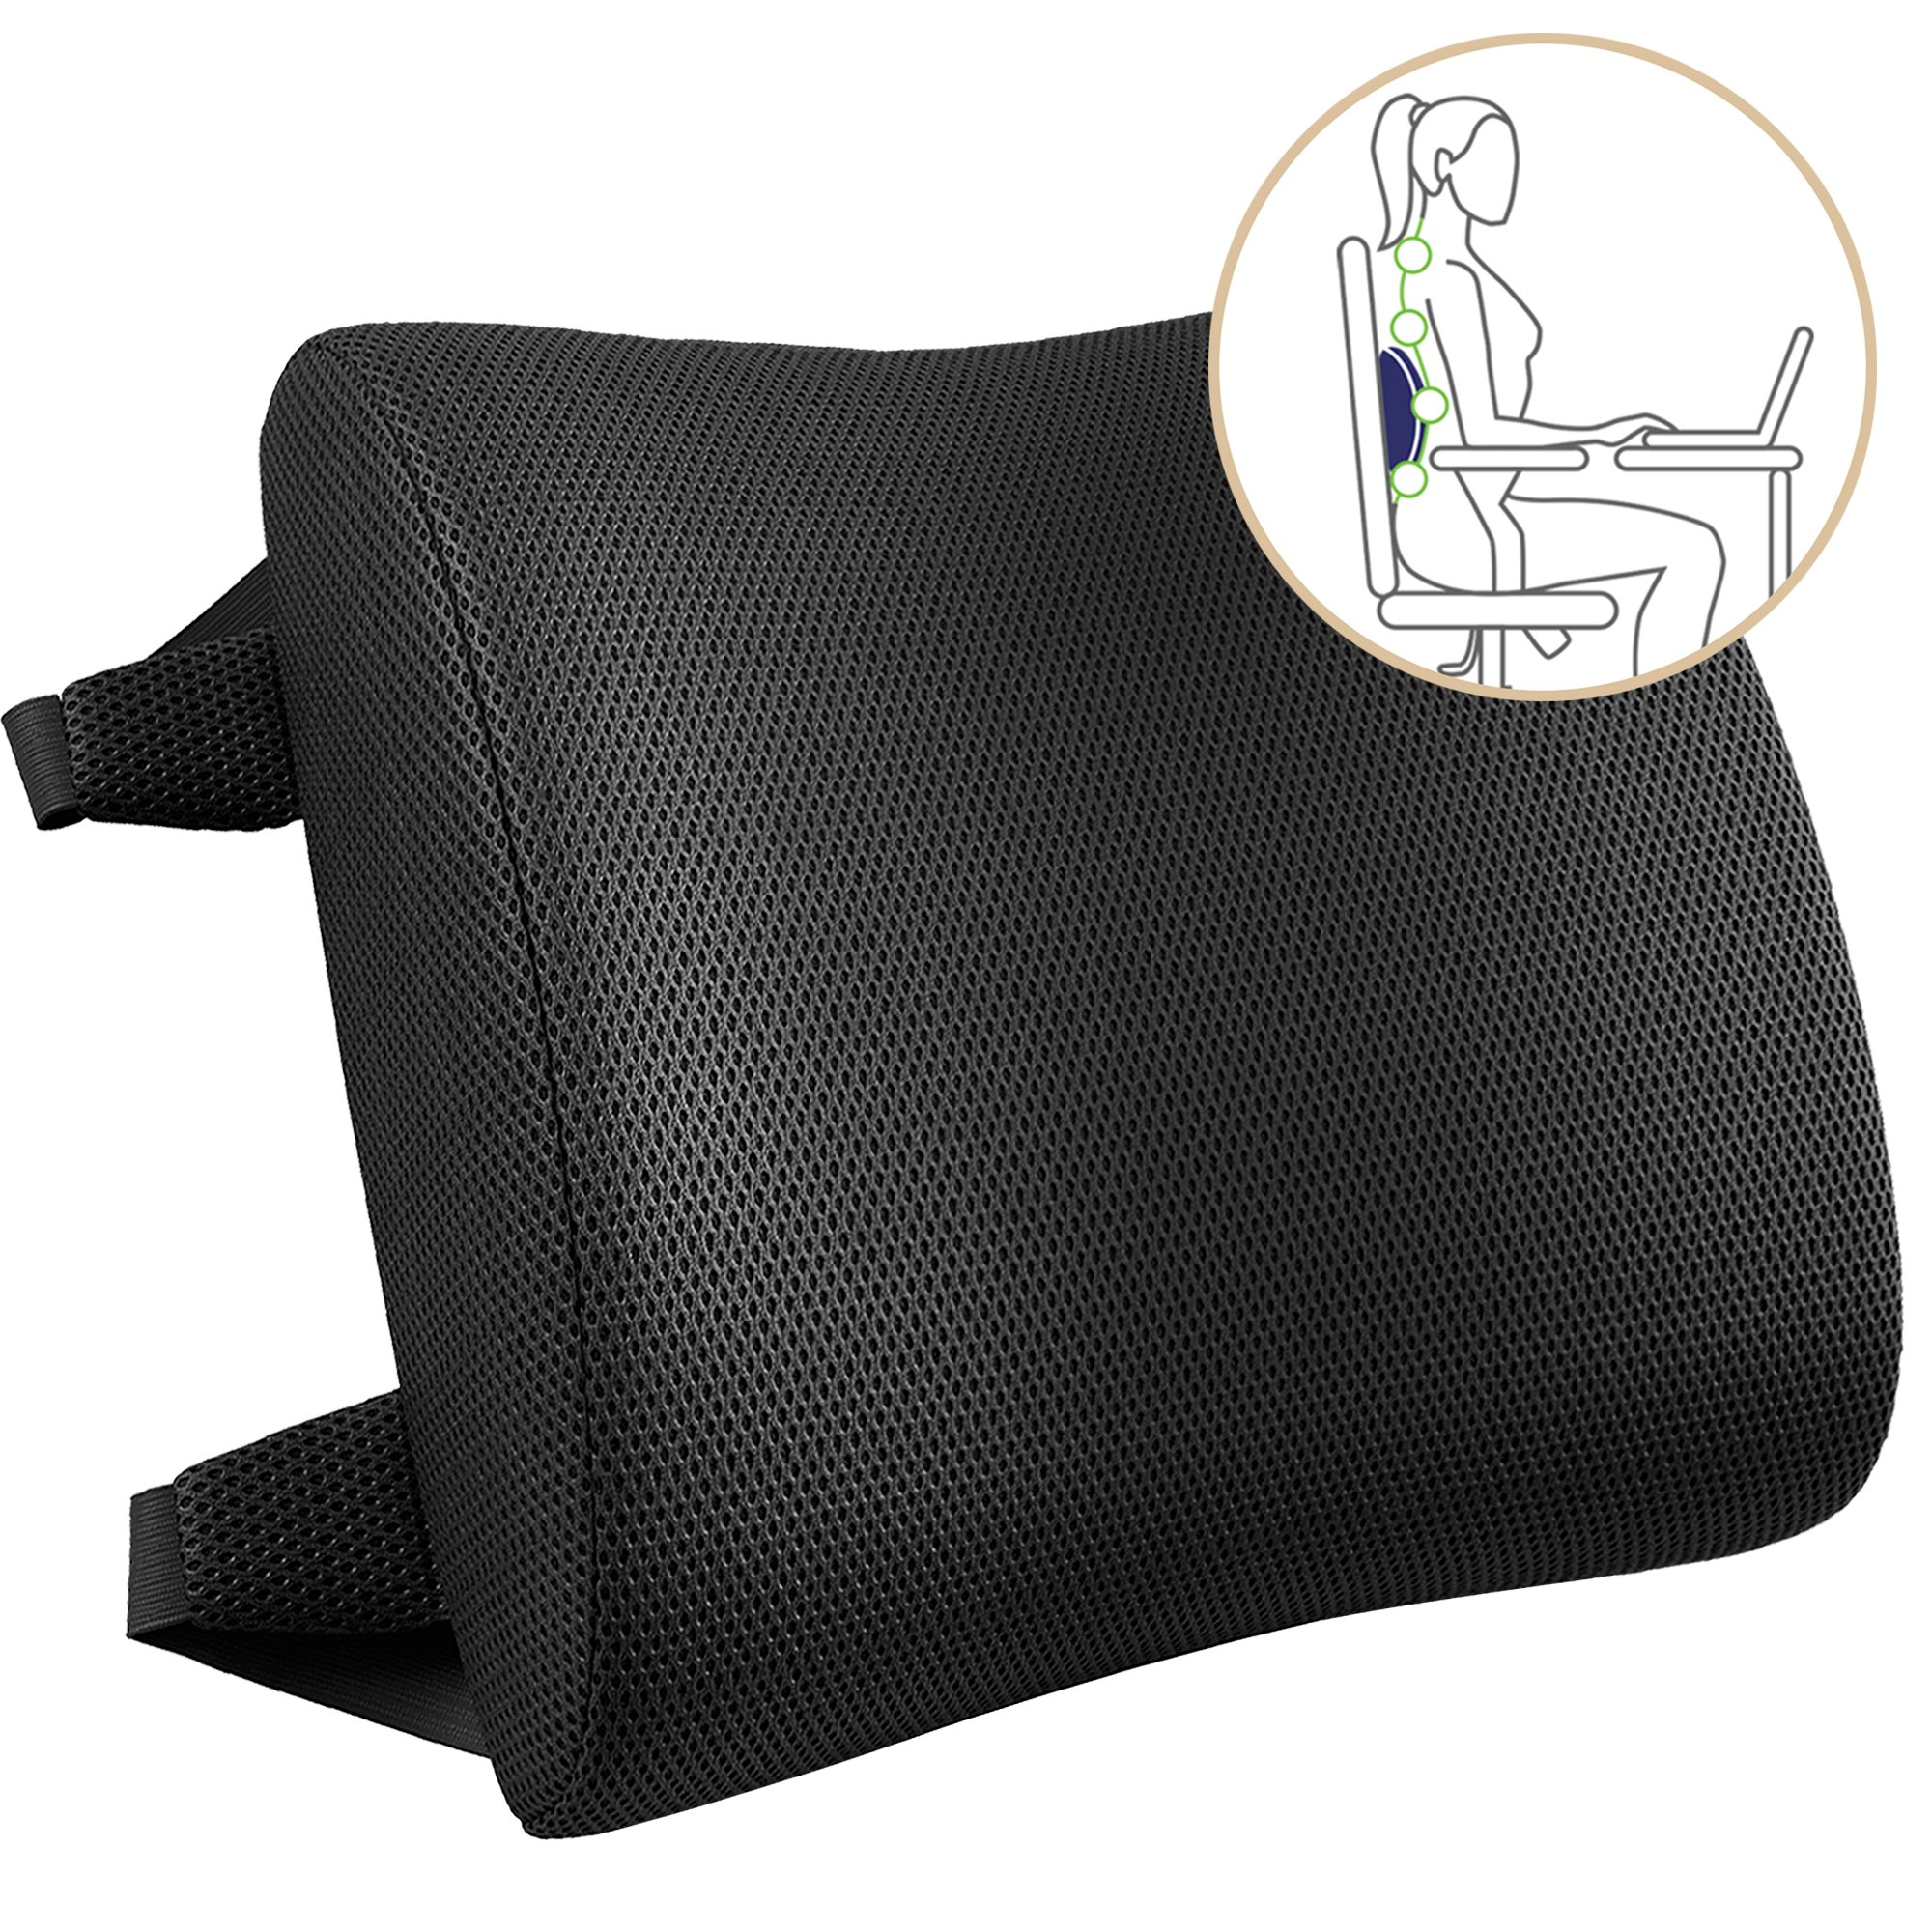 Ergonomic Memory Foam Backrest Cushion - Lumbar Support for Lower Back Pain Relief - Ideal Portable Orthopedic Seat Pillow for Car and Computer/Office Desk Chair